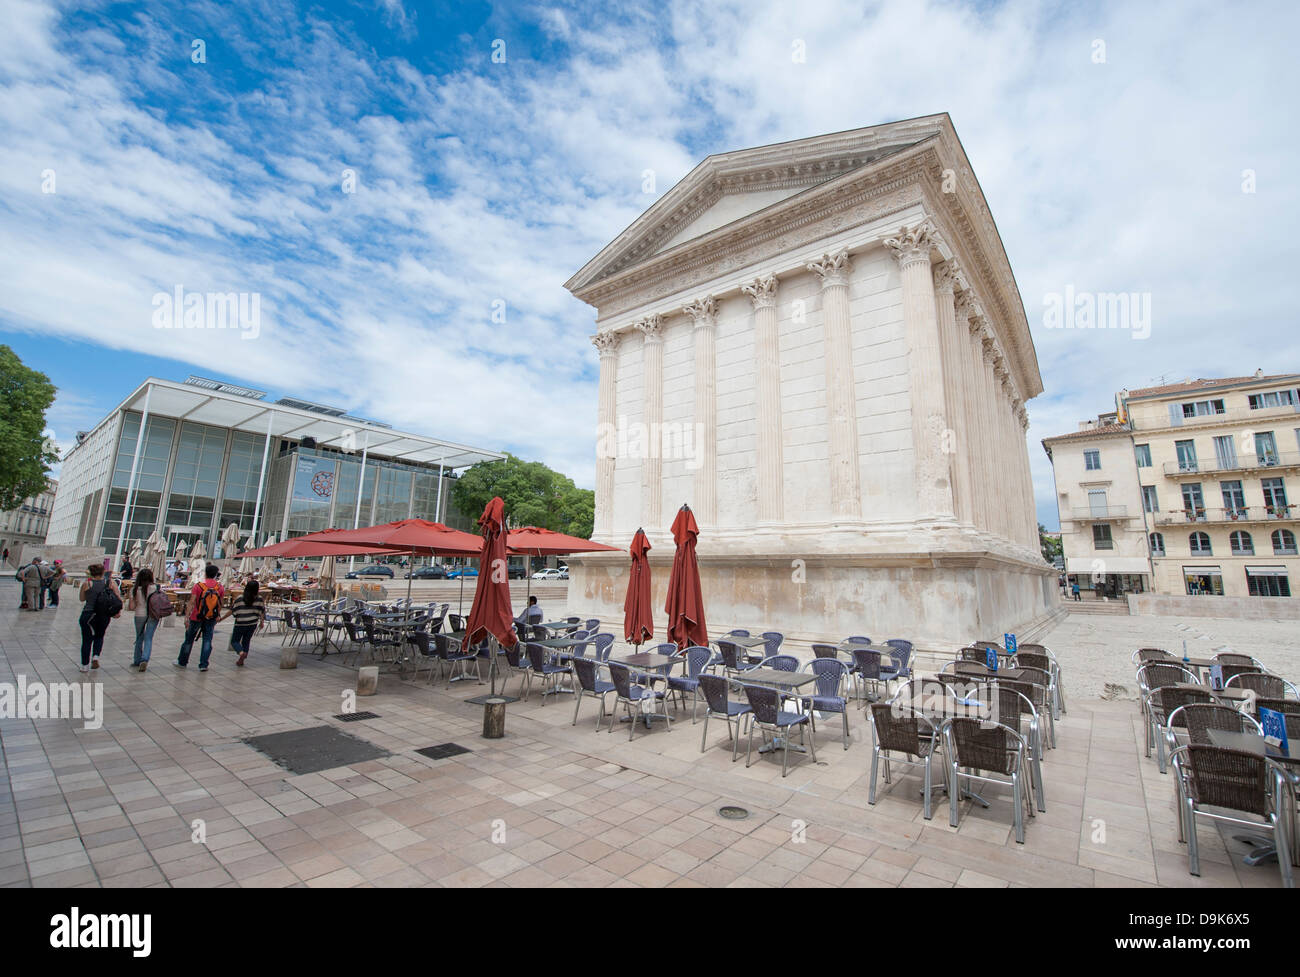 Maison Carrée Stockfotos & Maison Carrée Bilder - Alamy